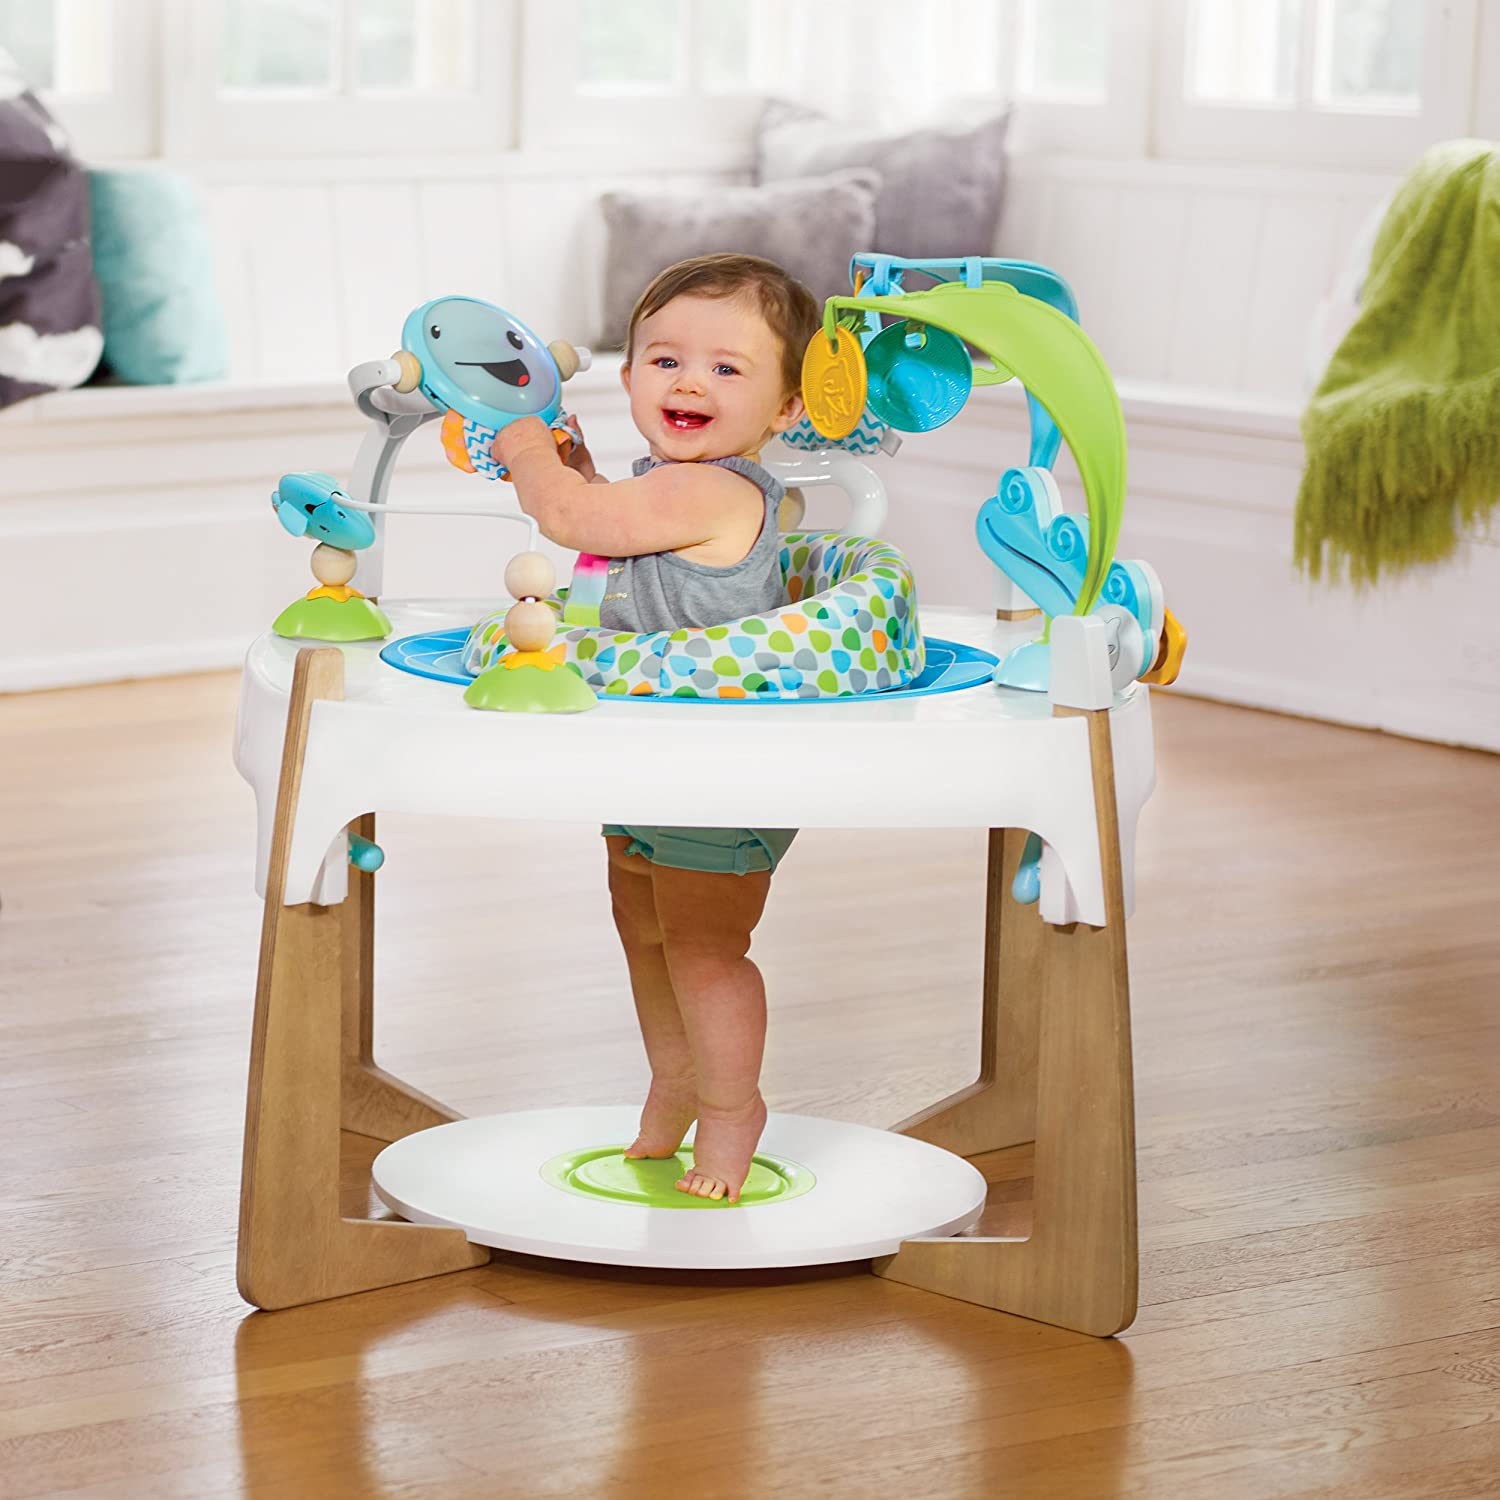 coupon codes beautiful and charming coupon codes Evenflo ExerSaucer 2-in-1 Activity Center + Art Table ...